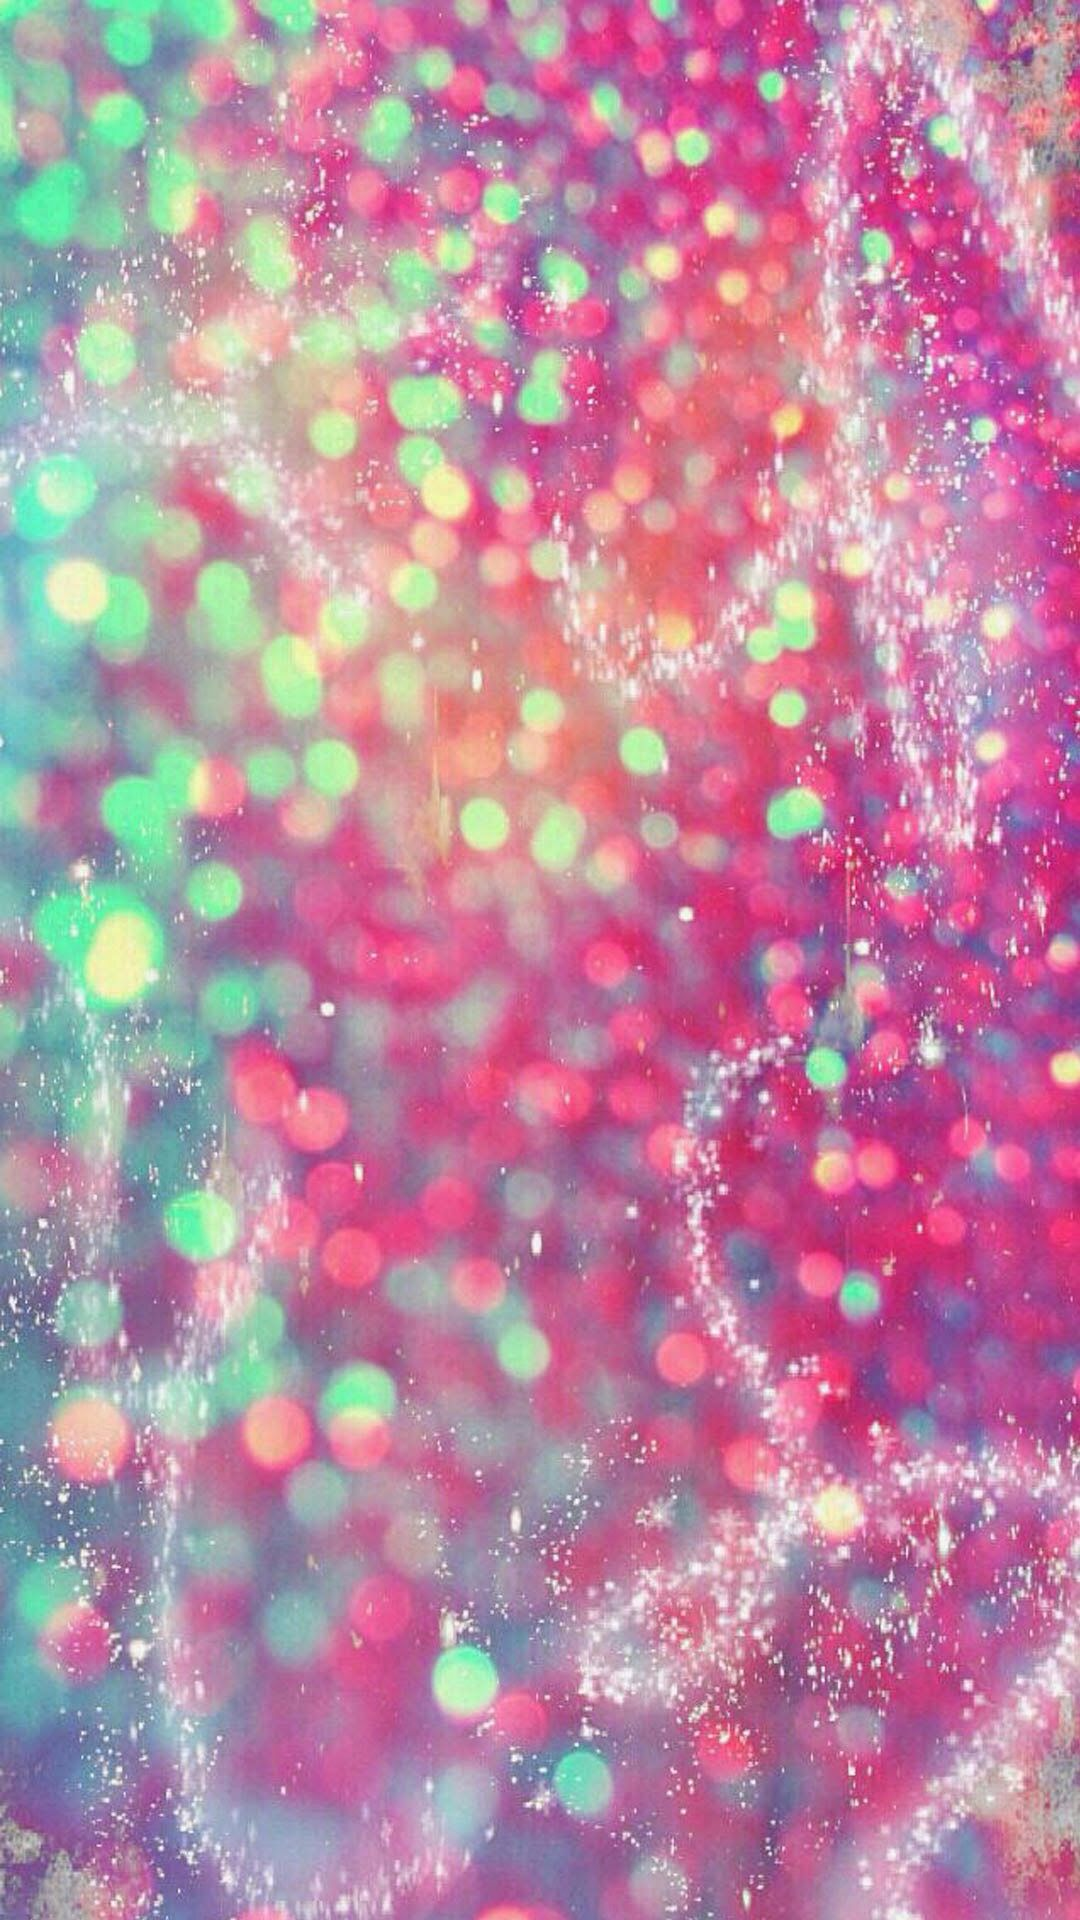 10 Awesome Cool Glitter Wallpapers For Iphone 6 Glittery Wallpaper Iphone Wallpaper Glitter Glitter Wallpaper